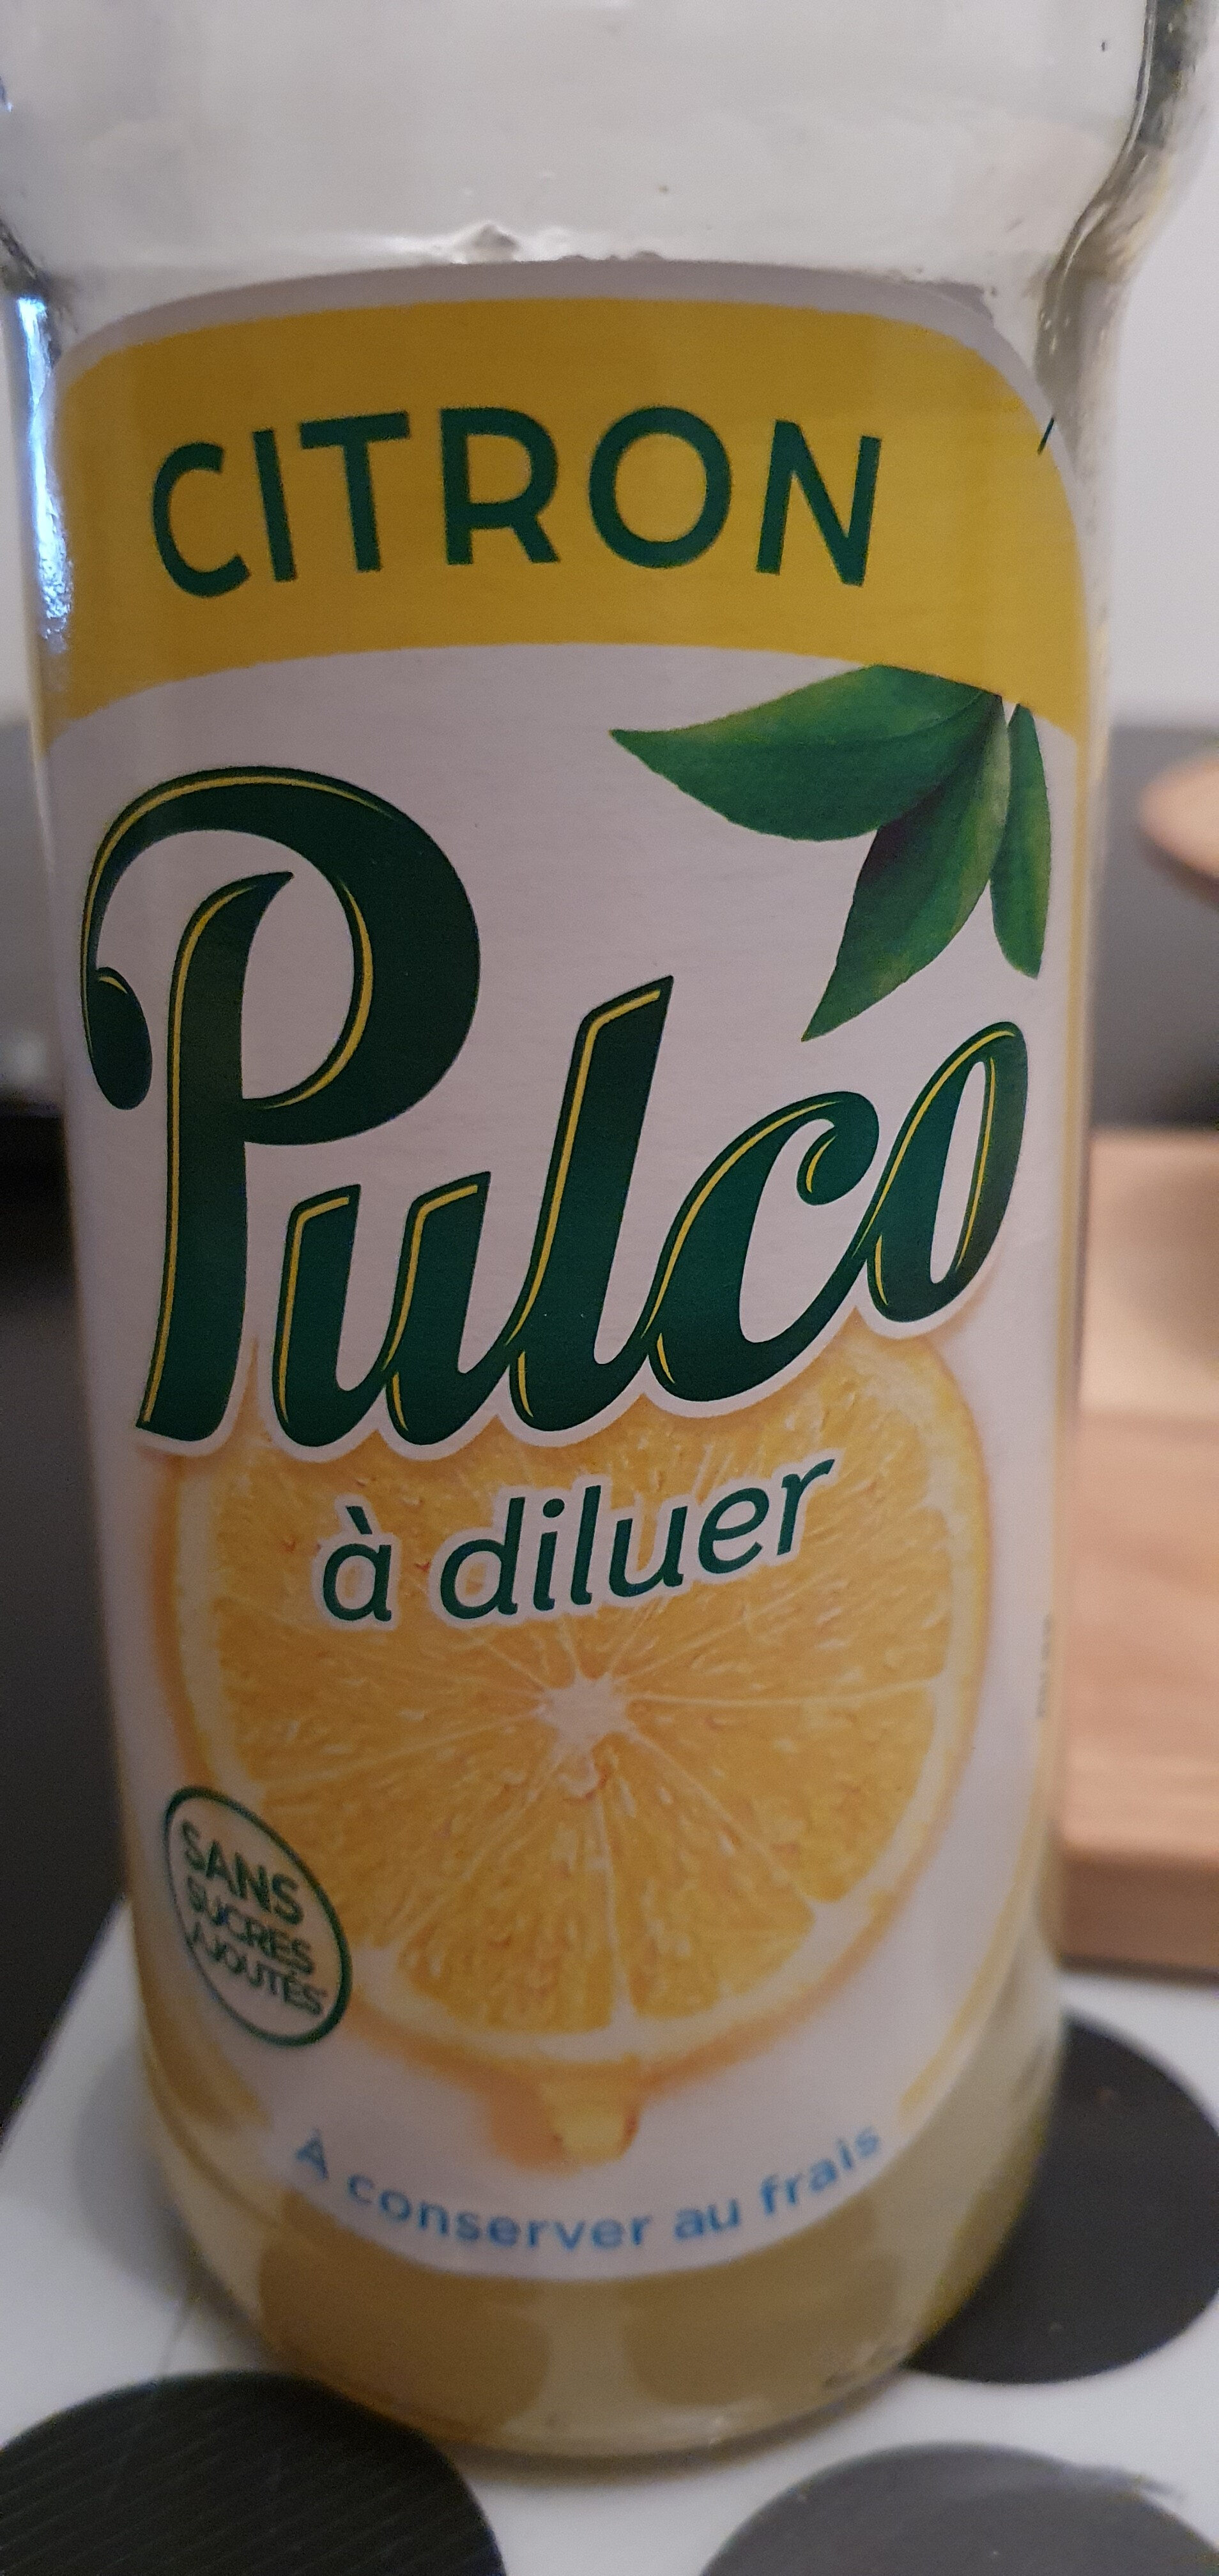 pulco citron - Product - fr